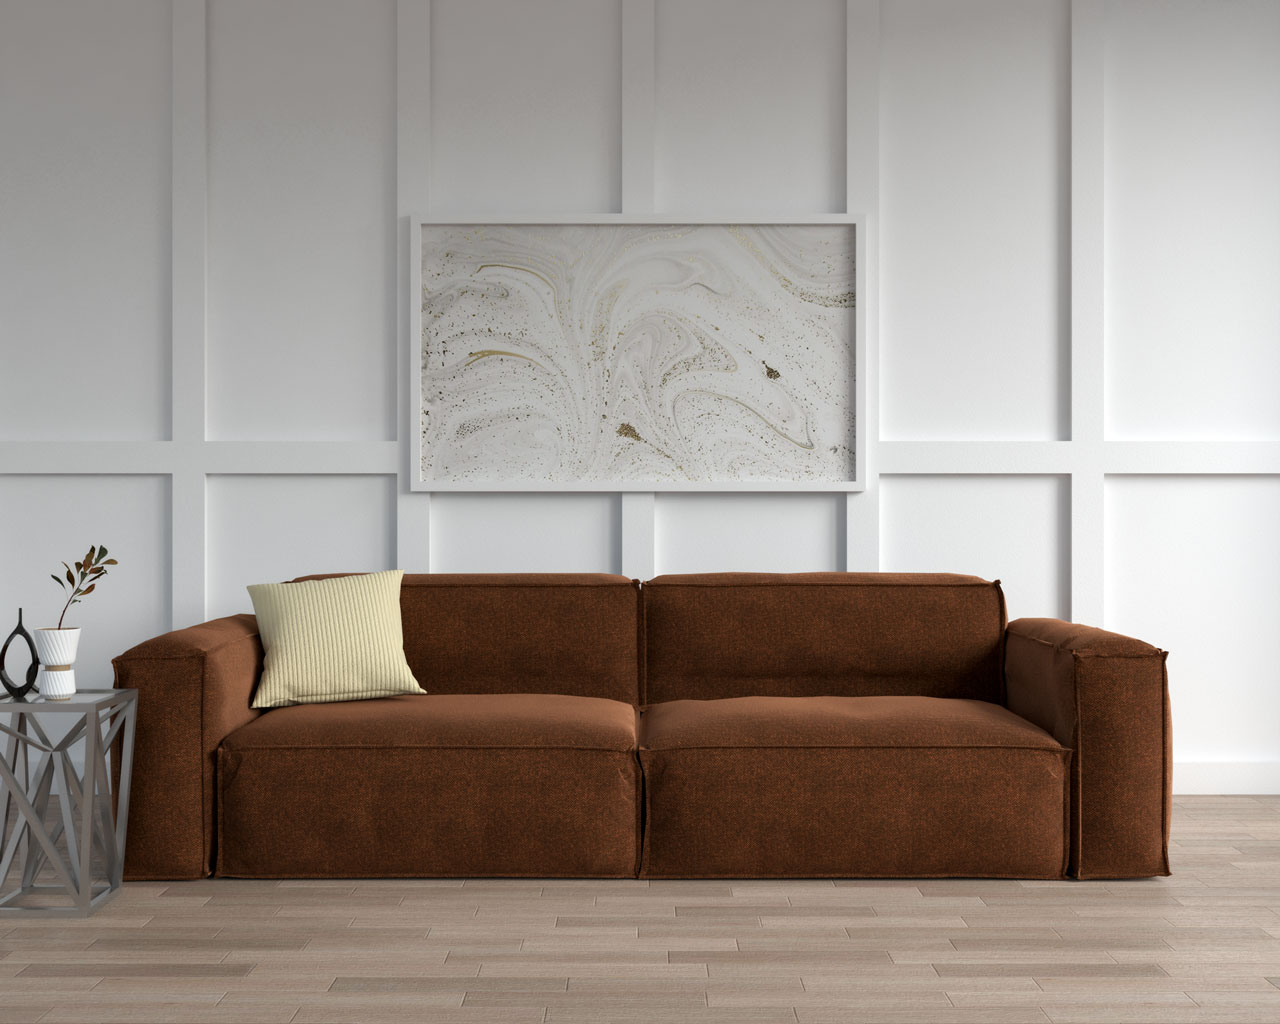 Brown sofa with yellow decorative pillow